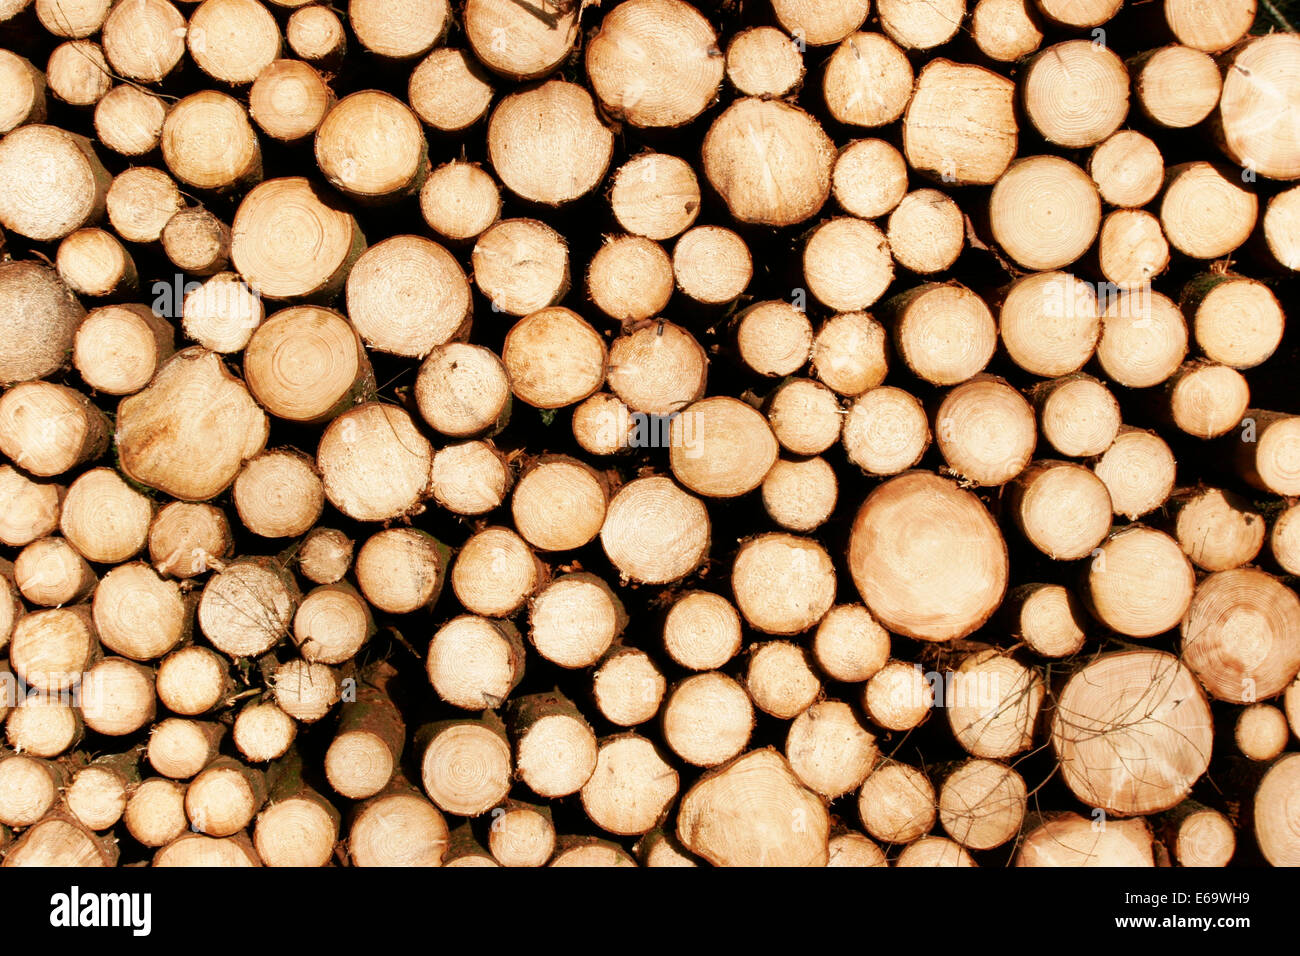 wood pile,forestry,firewood - Stock Image